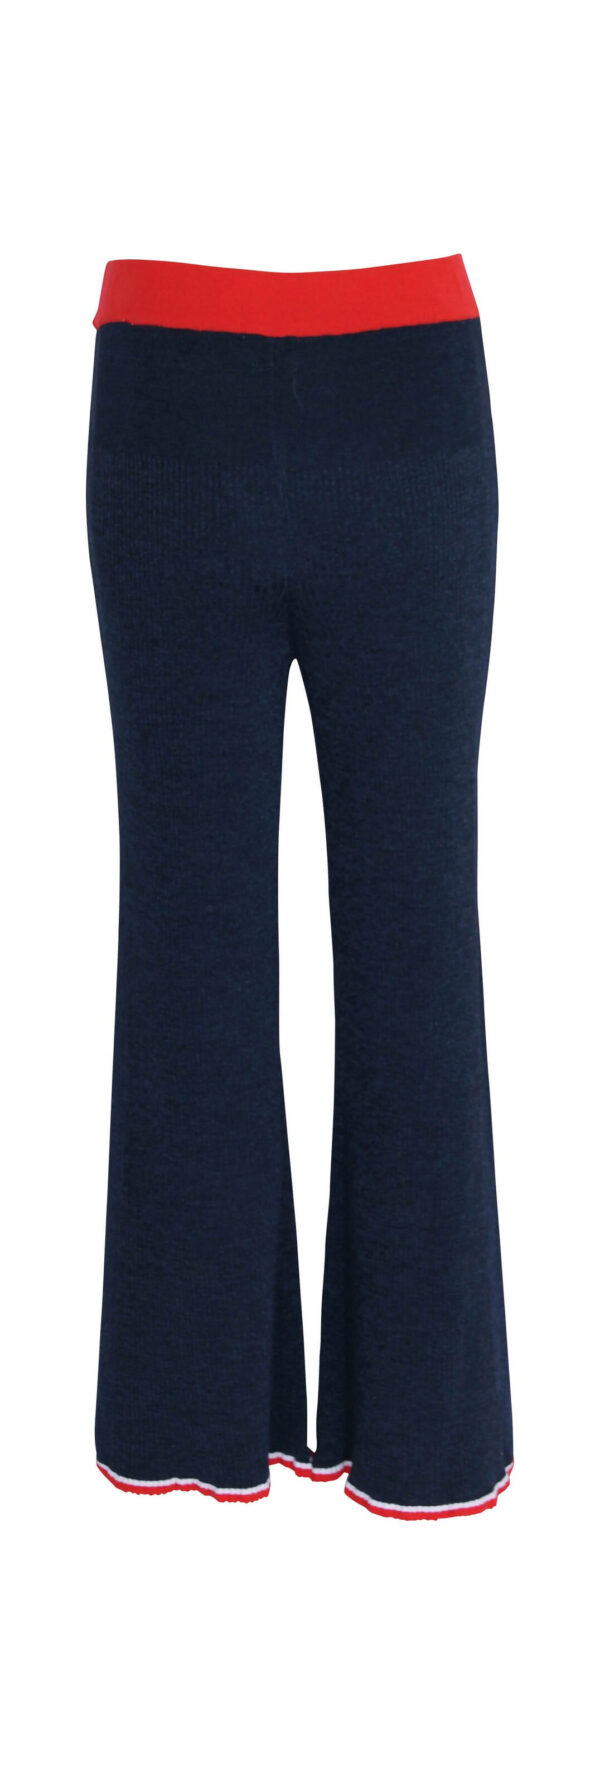 TREQUENCI PANTS, BLUE, BY MALENE BIRGER